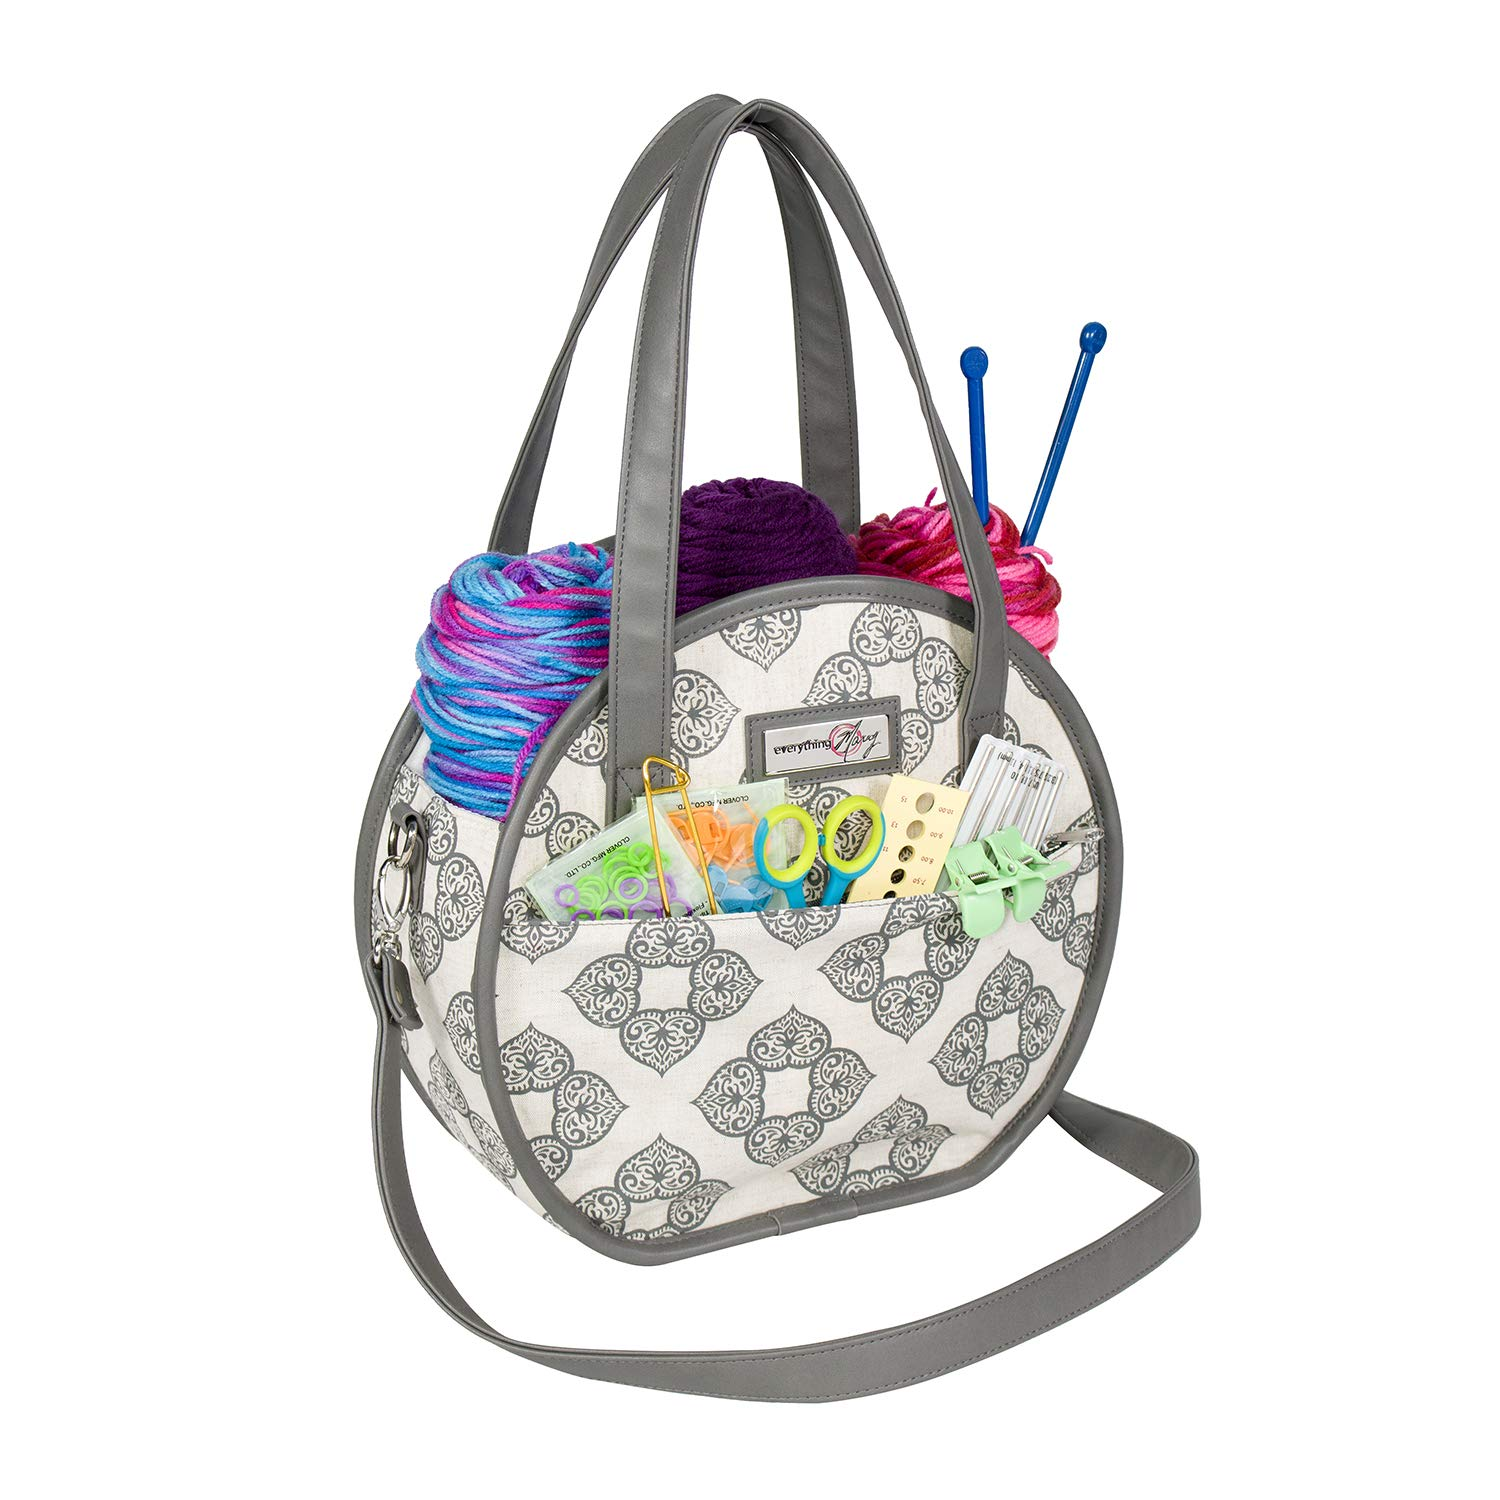 Everything Mary Rounded Knitting Tote